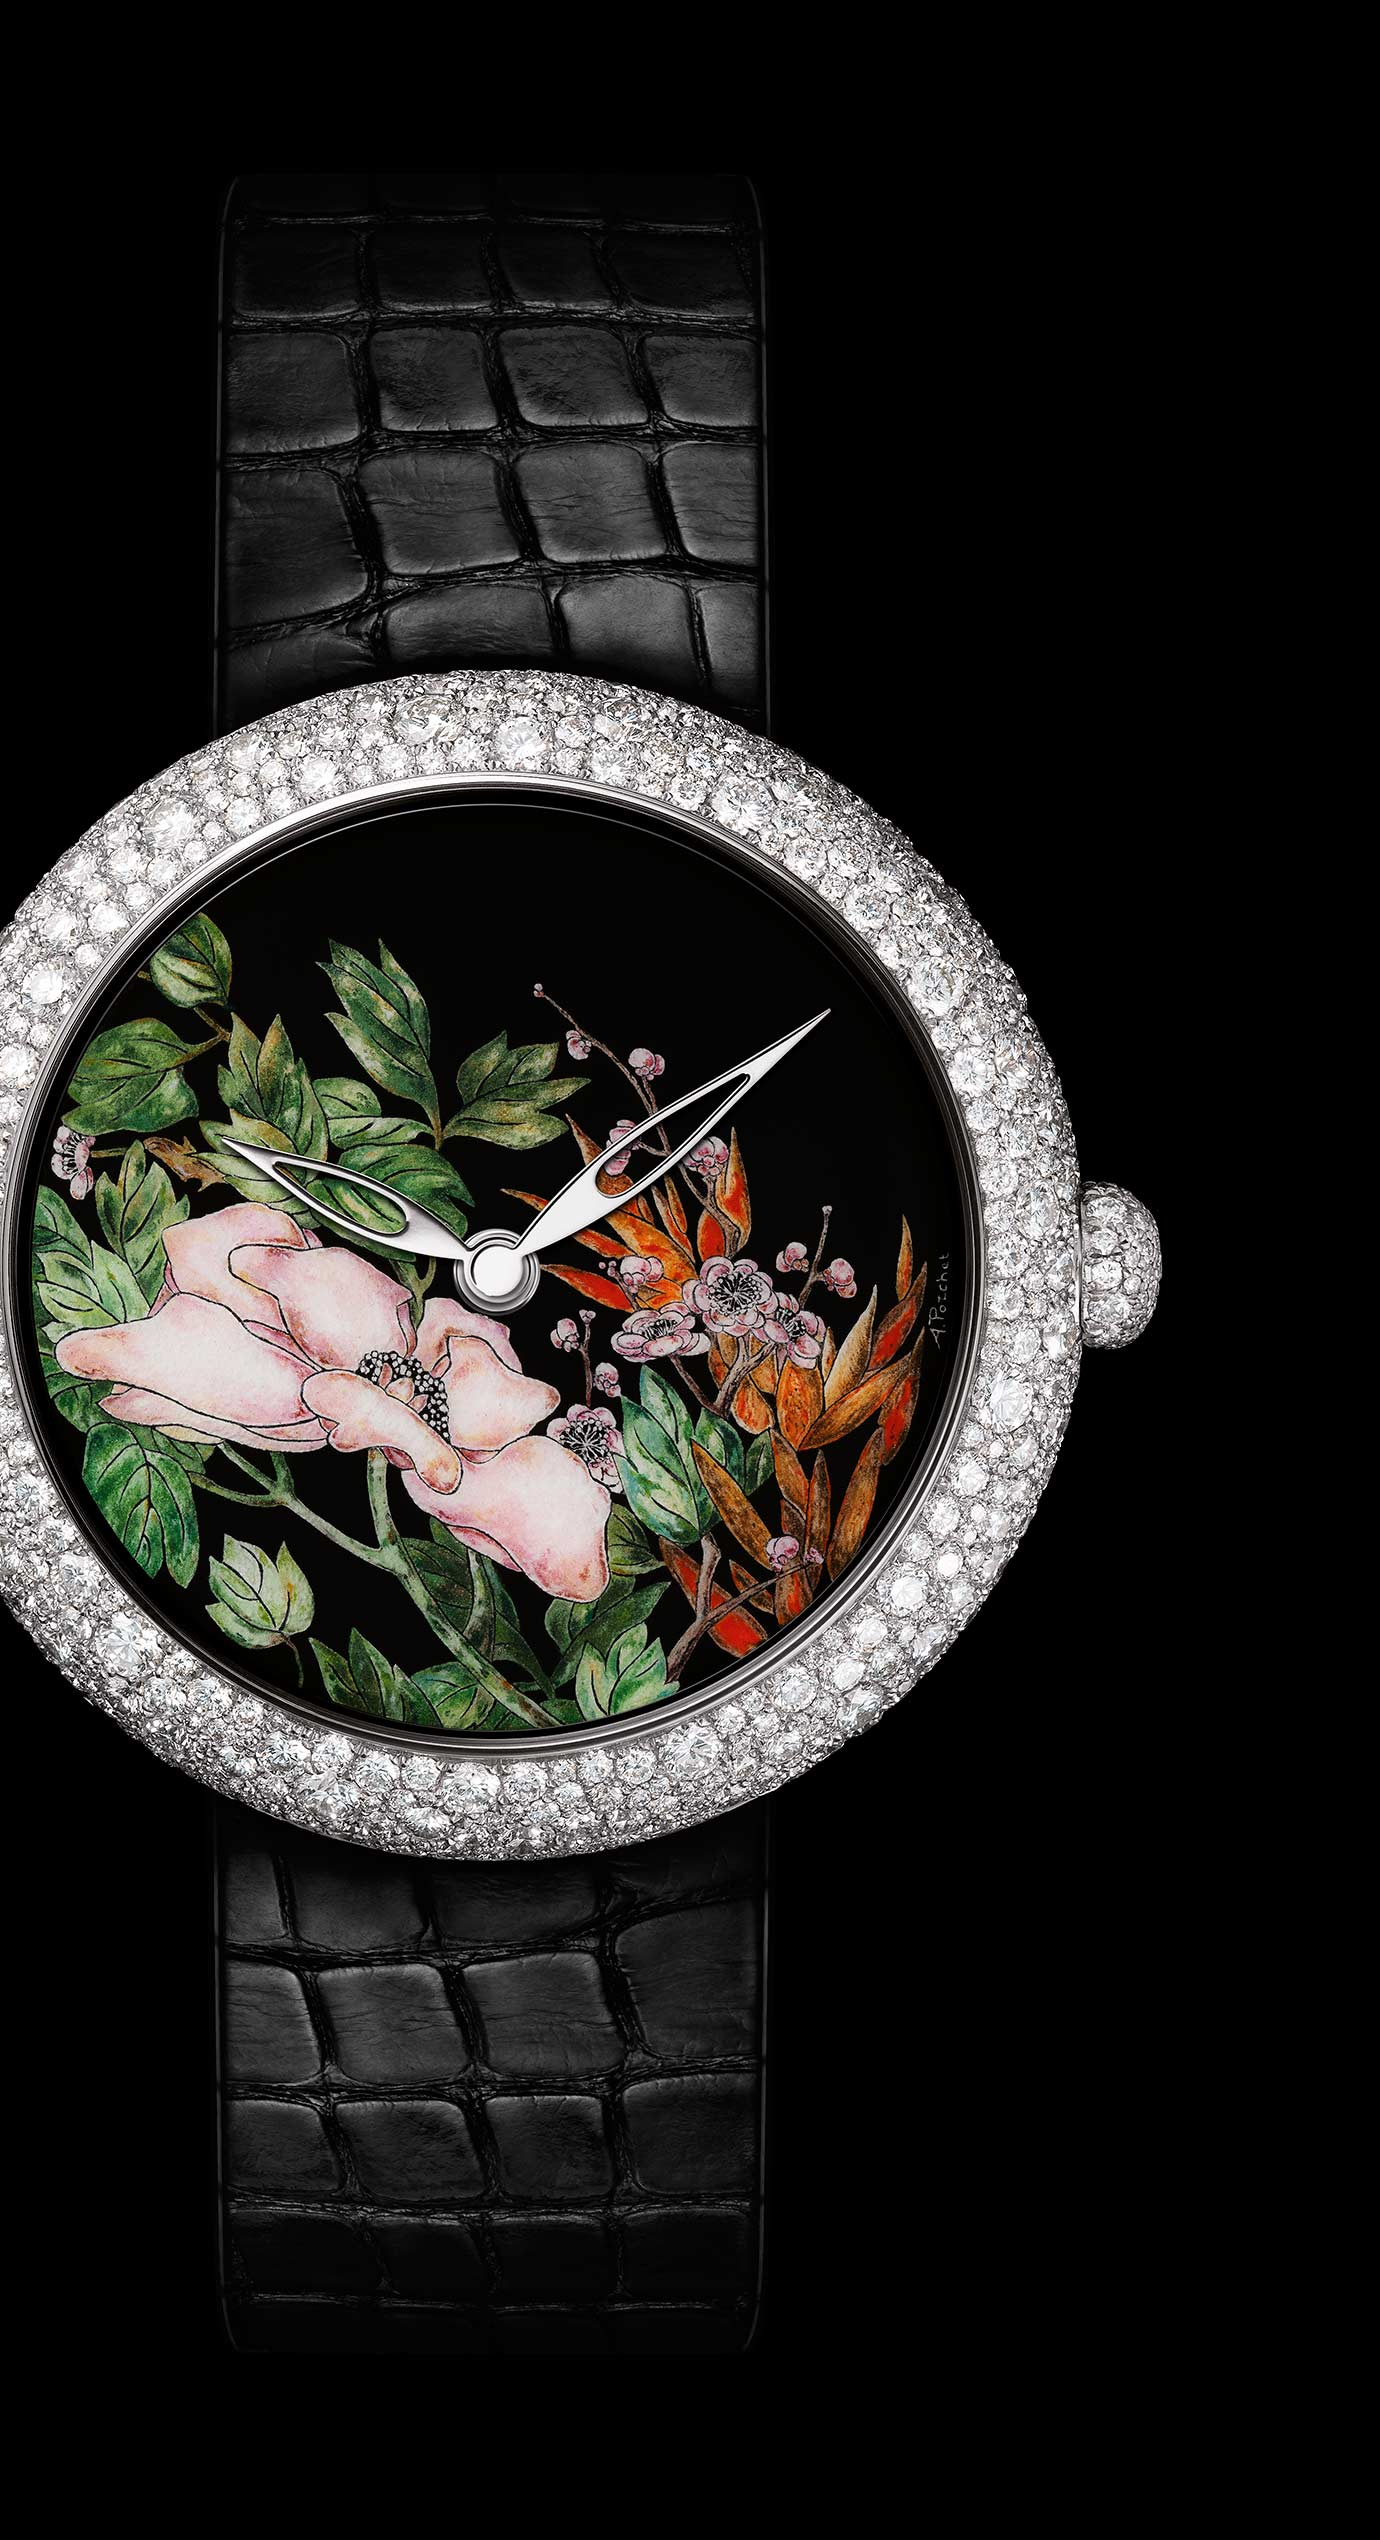 Mademoiselle Privé Coromandel watch in 18K white gold set with diamonds created using the Grand Feu enamel miniature technique - Enlarged view